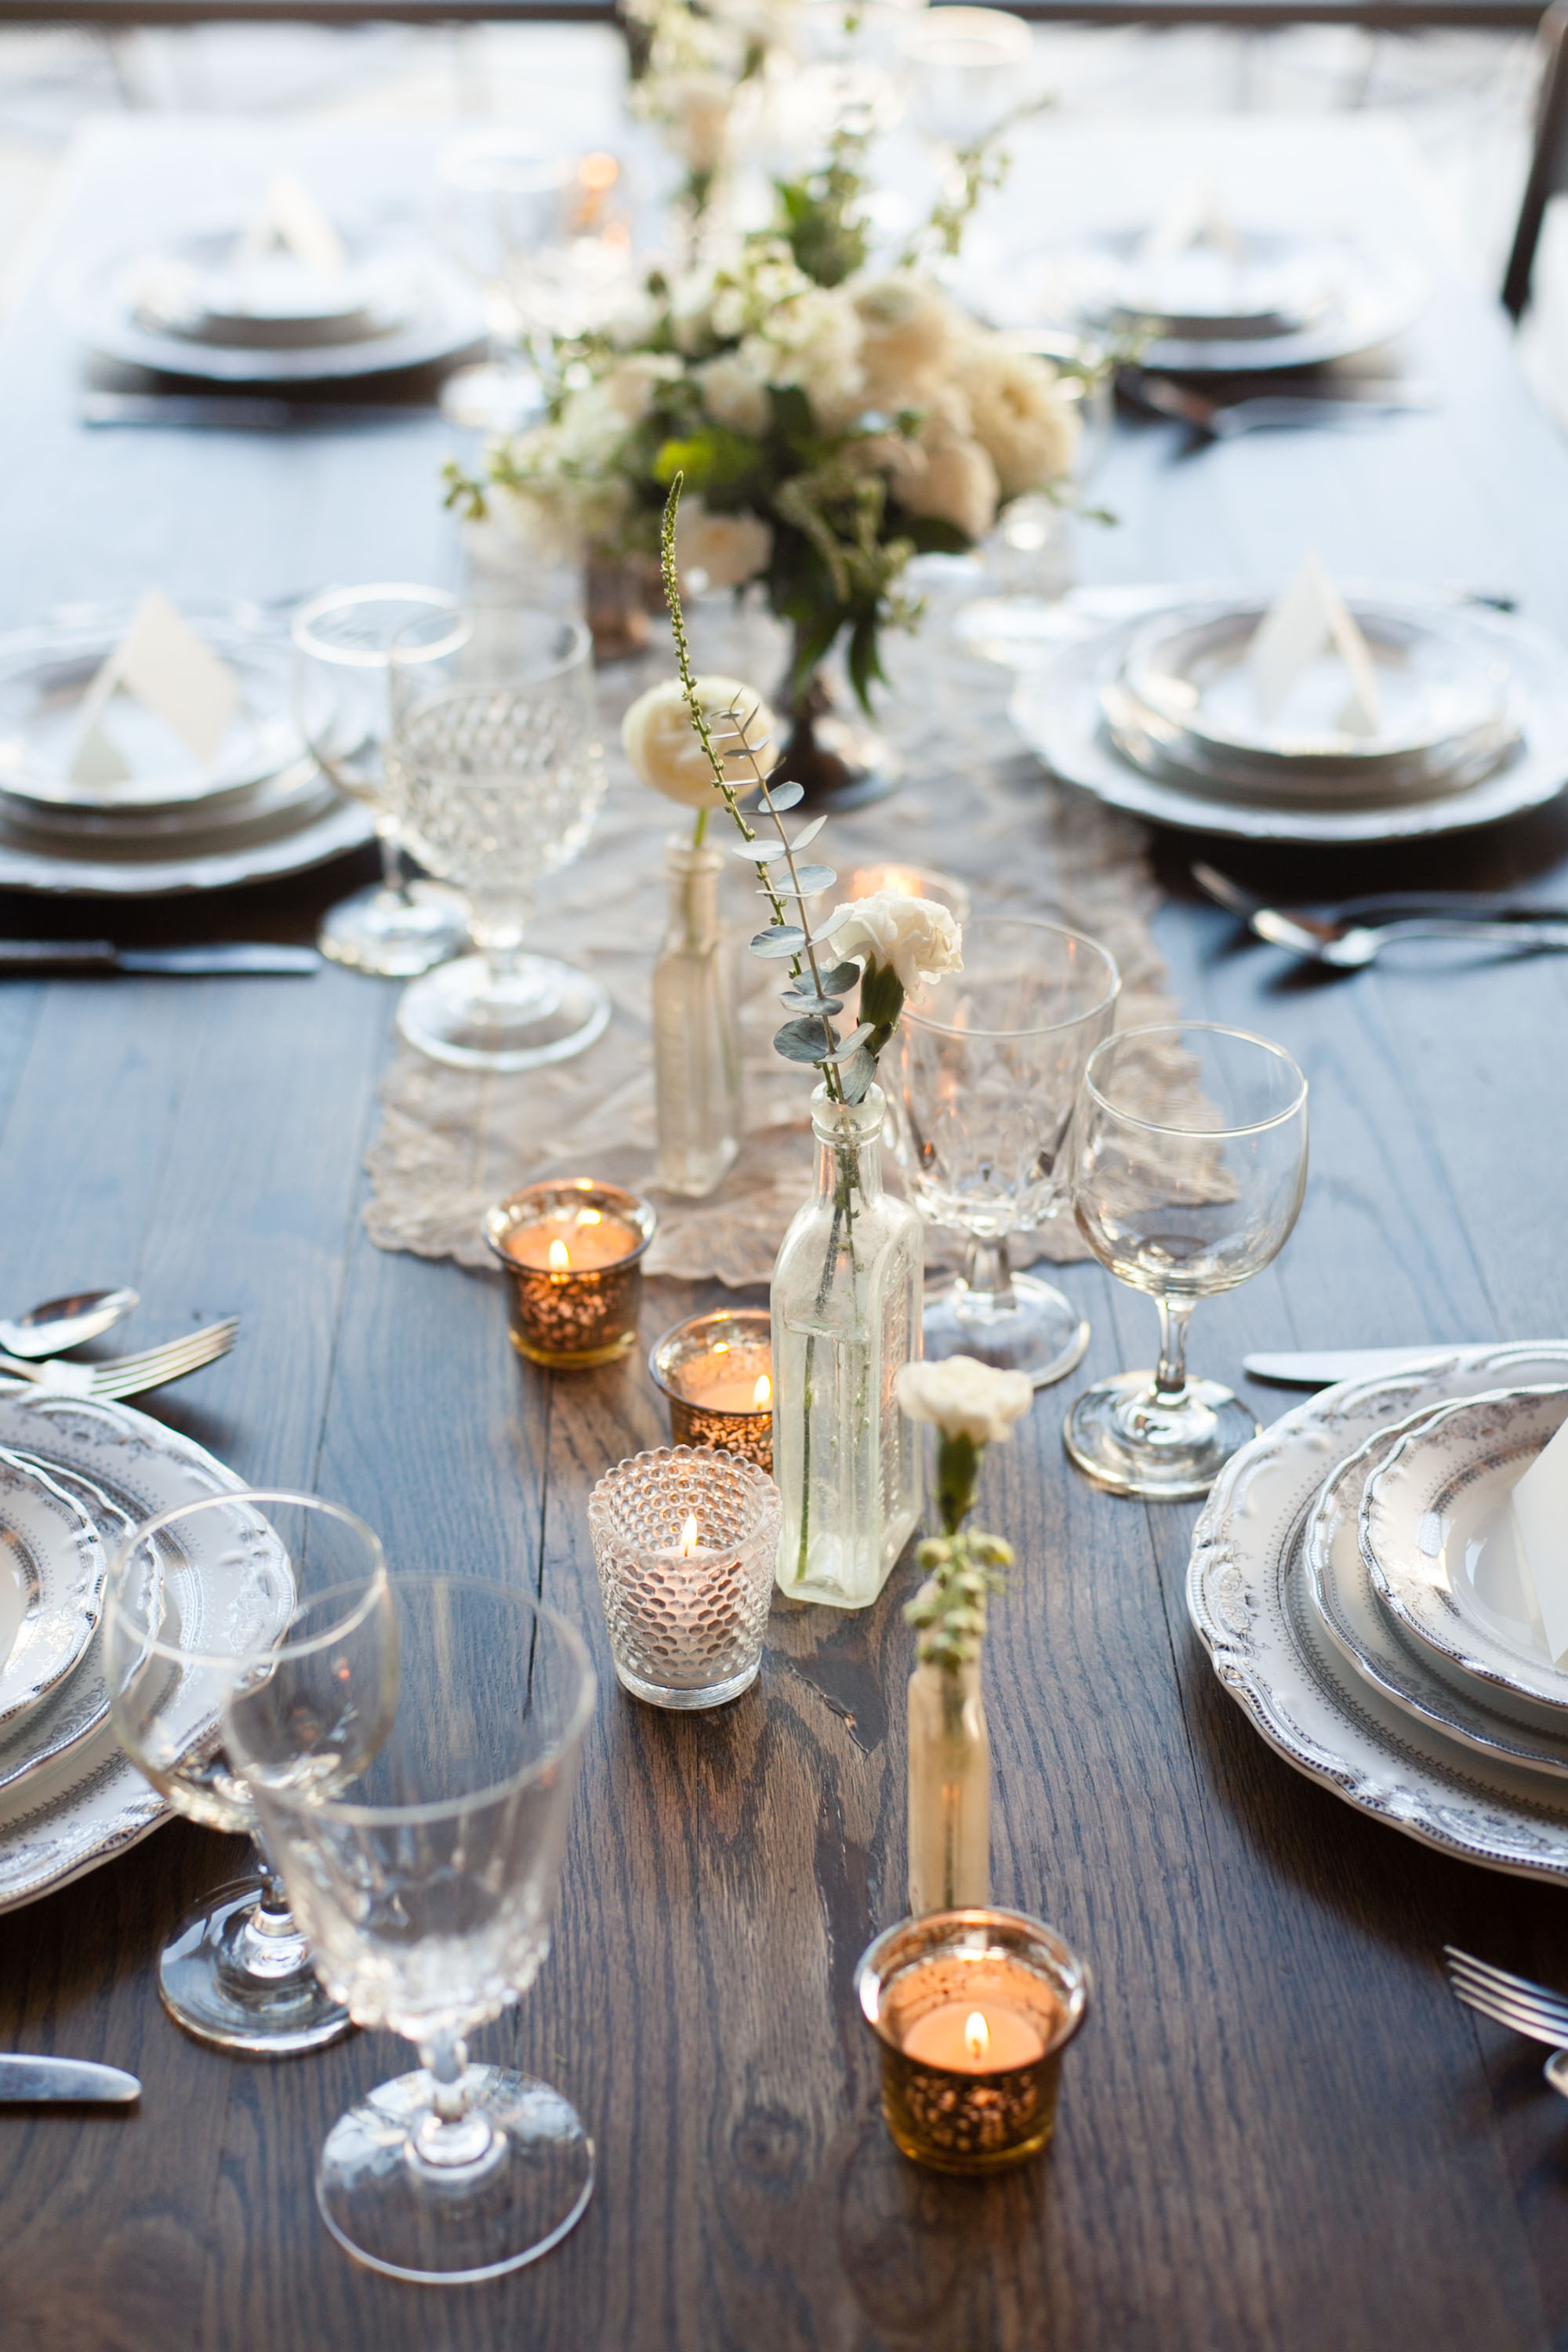 Our last table setting was inspired by Kinfolk and thinking economically. Beauty is not synonymous with high dollar. If you are looking to add a unique touch to your reception but you are on a strict budget this theme would be perfect!